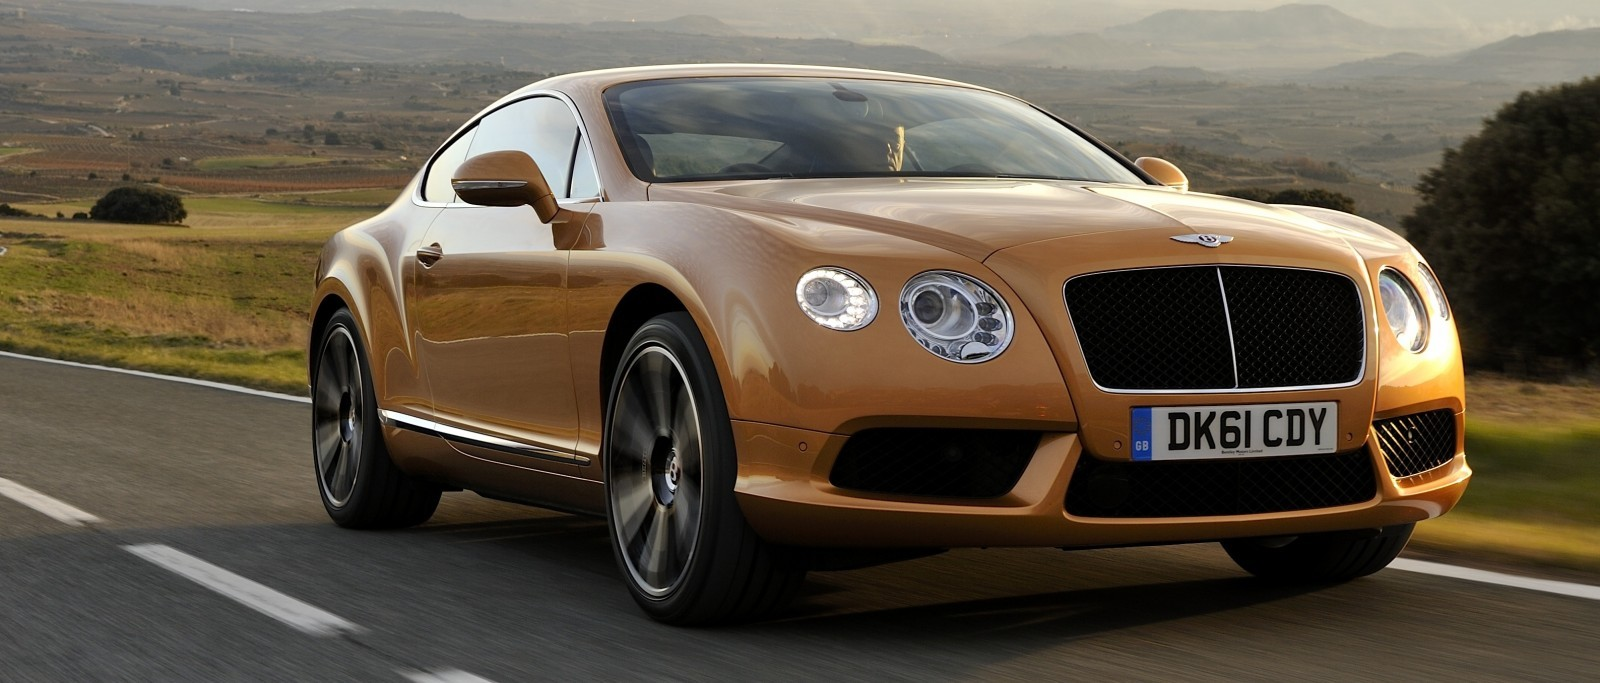 carrevsdaily 2014 bentley continental gtc v8 and v8 s 61. Cars Review. Best American Auto & Cars Review